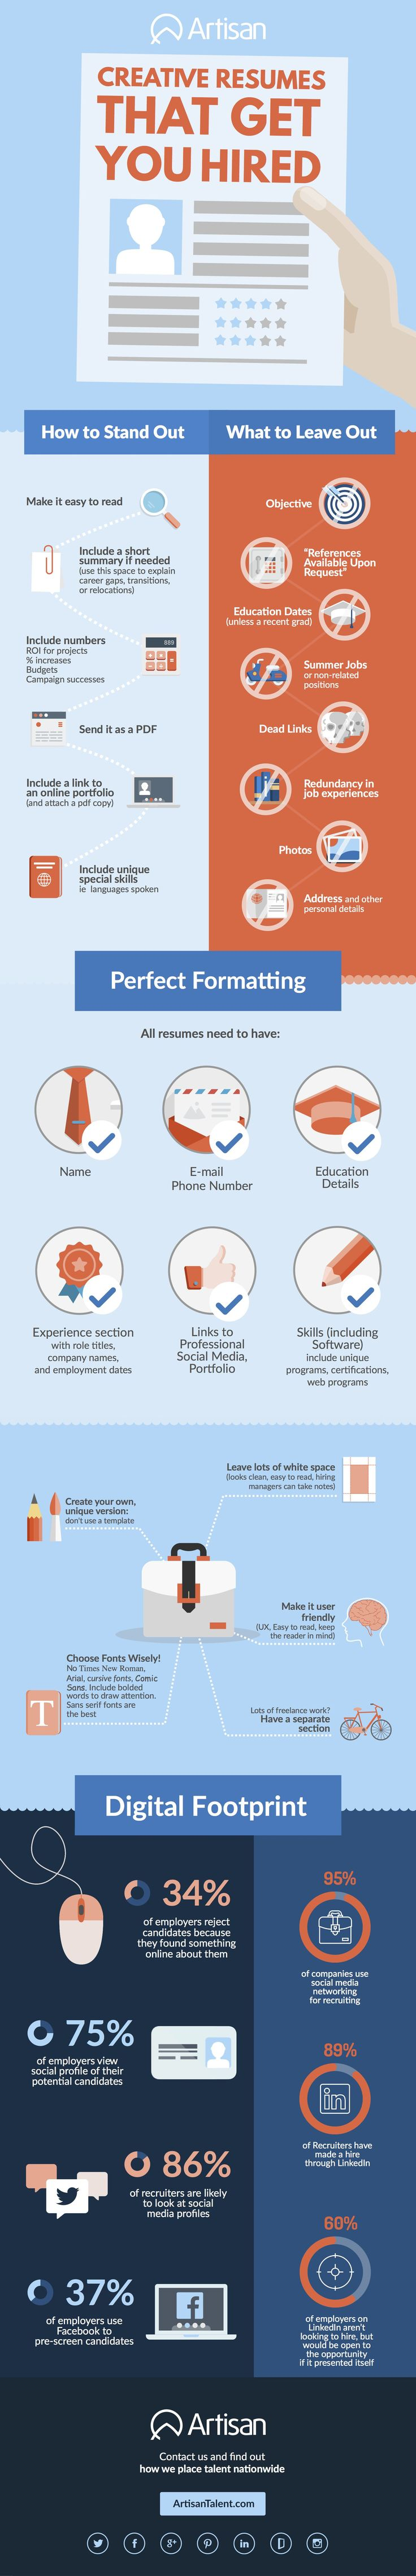 resume-that-get-you-hired--infographic (2)